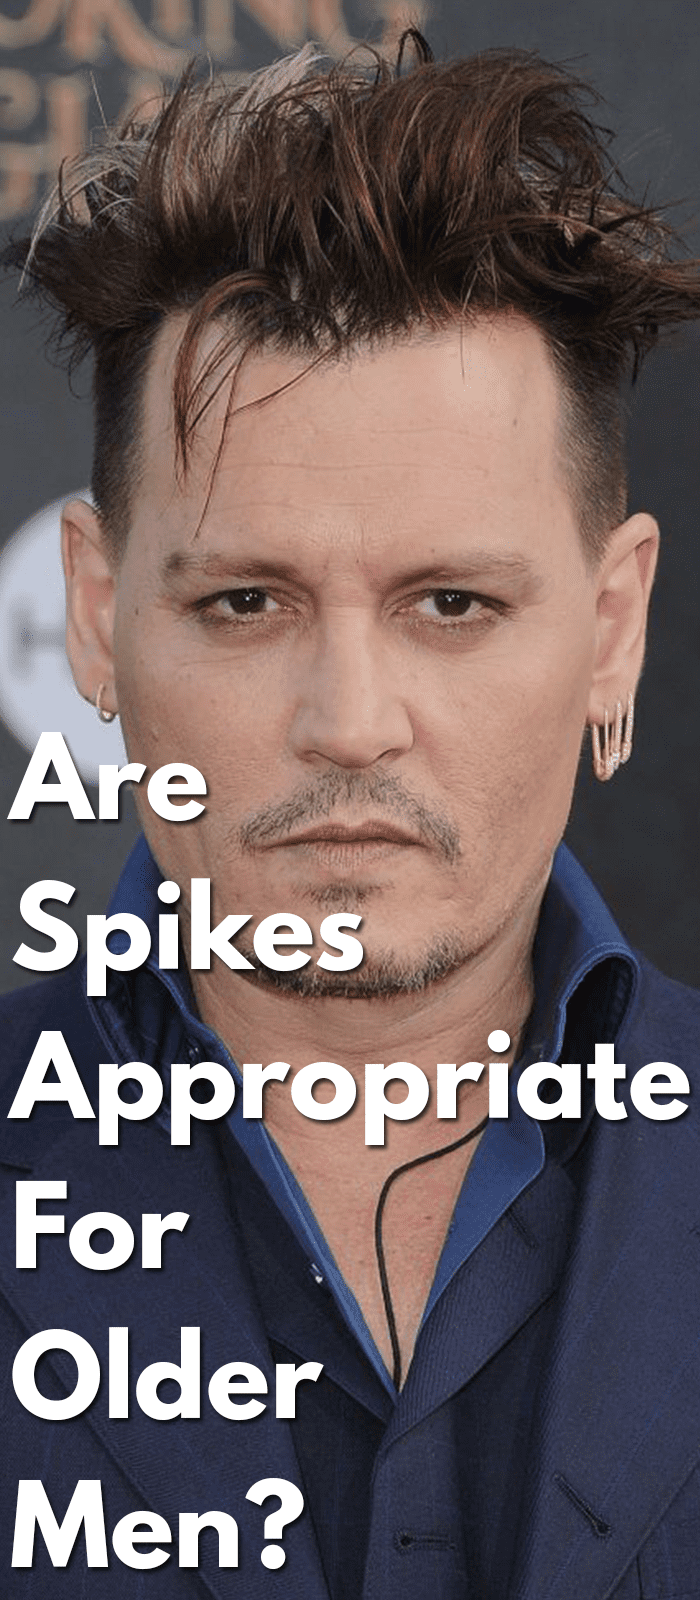 Are-Spikes-Appropriate-For-Older-Men..